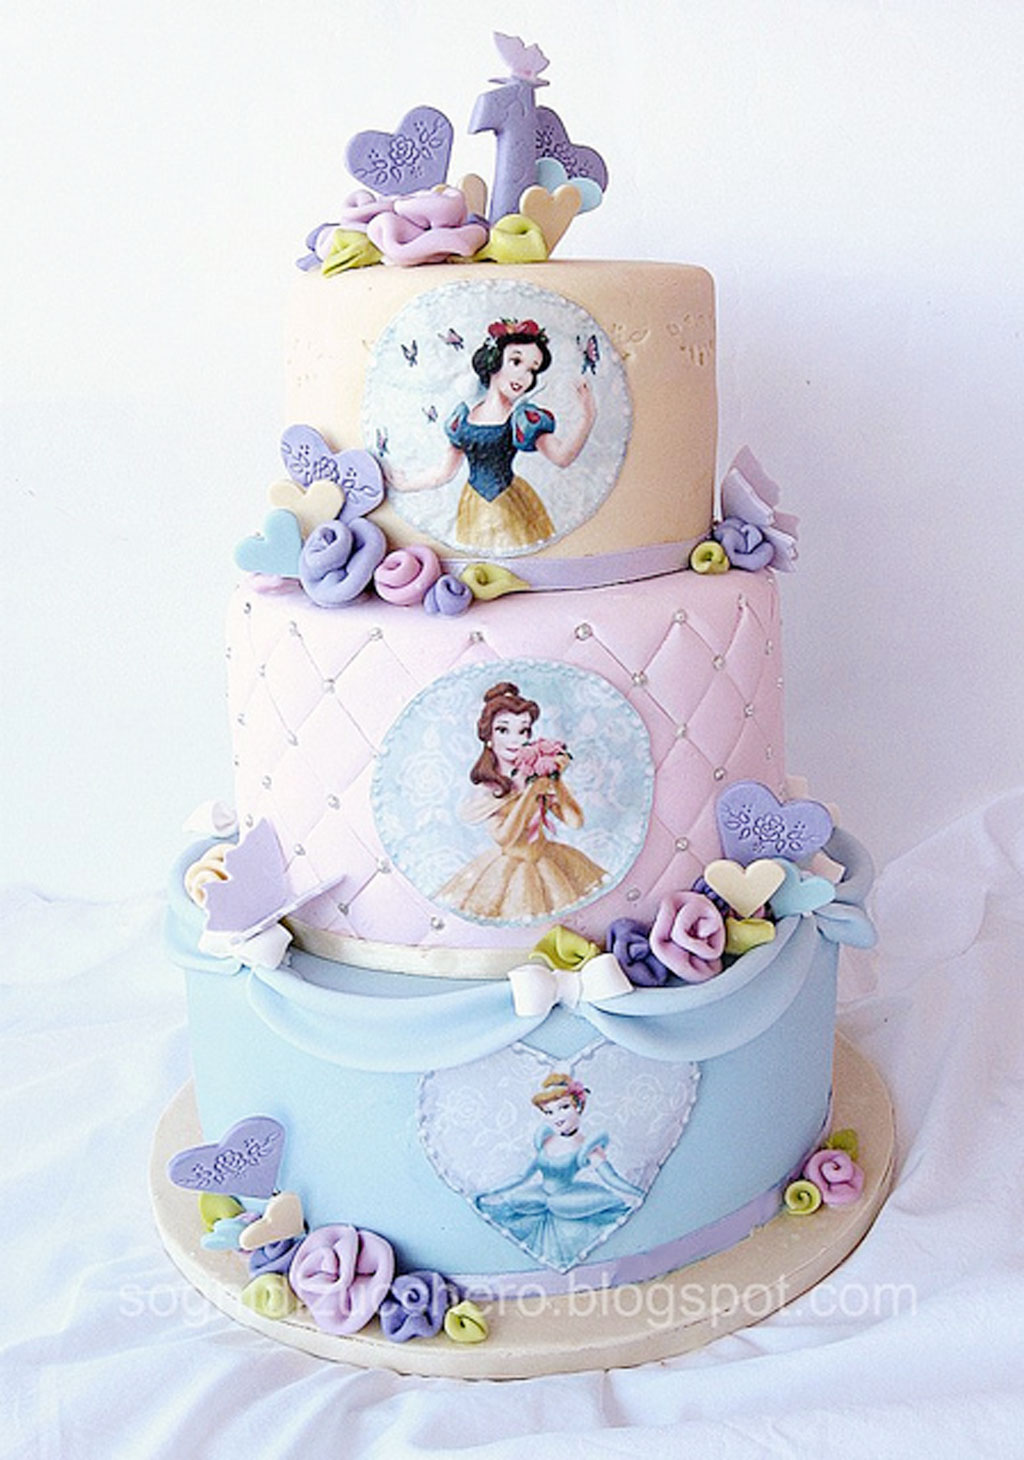 Birthday Cake Pictures Of Princess : Disney Princess Birthday Cake Pictures Birthday Cake ...